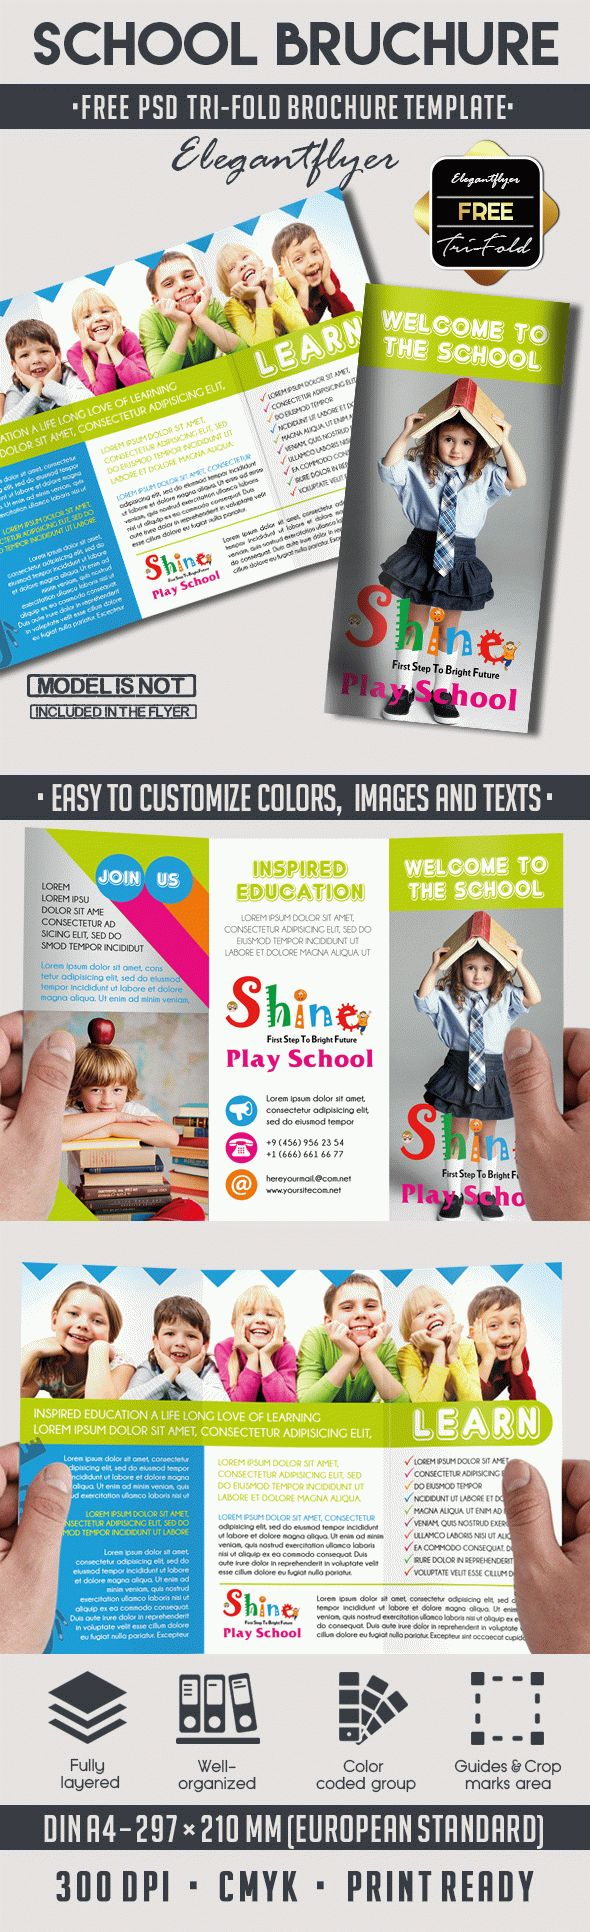 School free psd tri fold psd brochure template by for Free psd brochure template